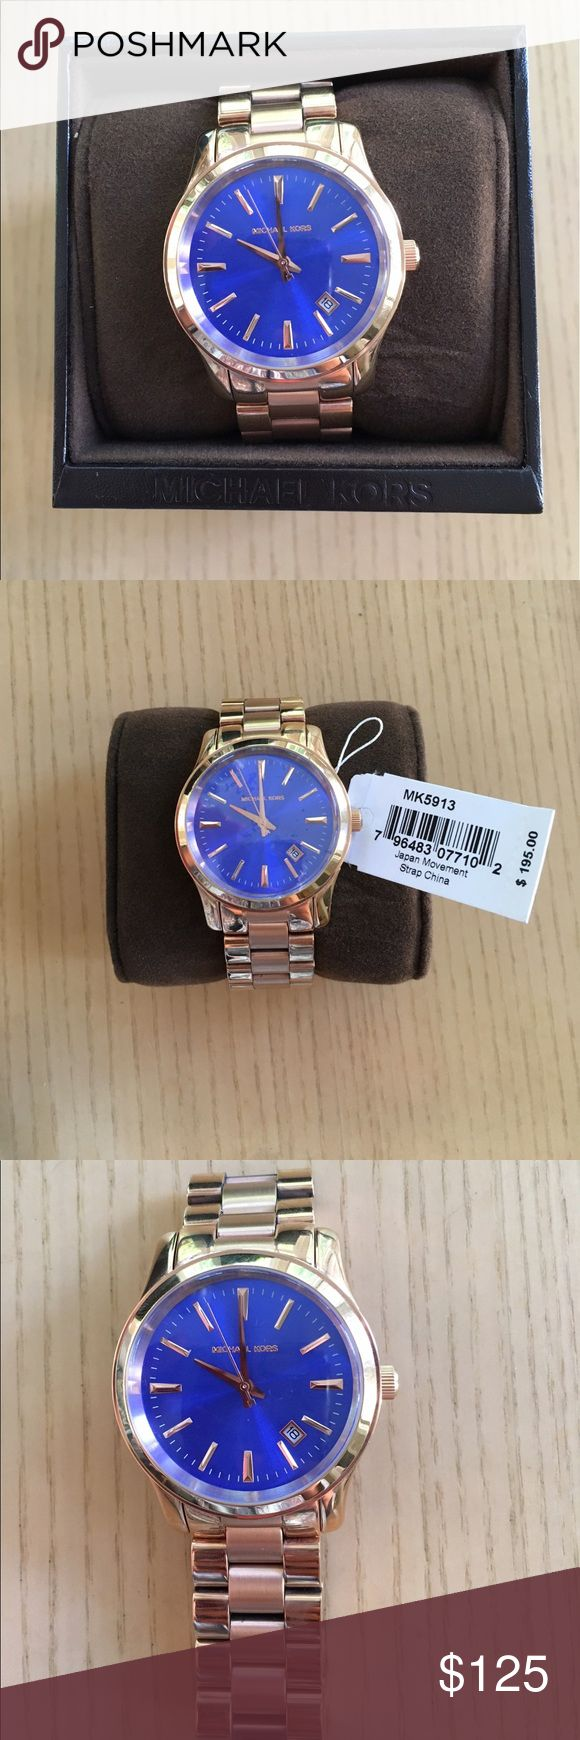 Michael Kors Rose Gold/Blue Watch Michael Kors rose gold and blue watch. Never been worn with tags. Extra links and box included. Needs a new battery due to sitting with no use. 💙 MICHAEL Michael Kors Accessories Watches